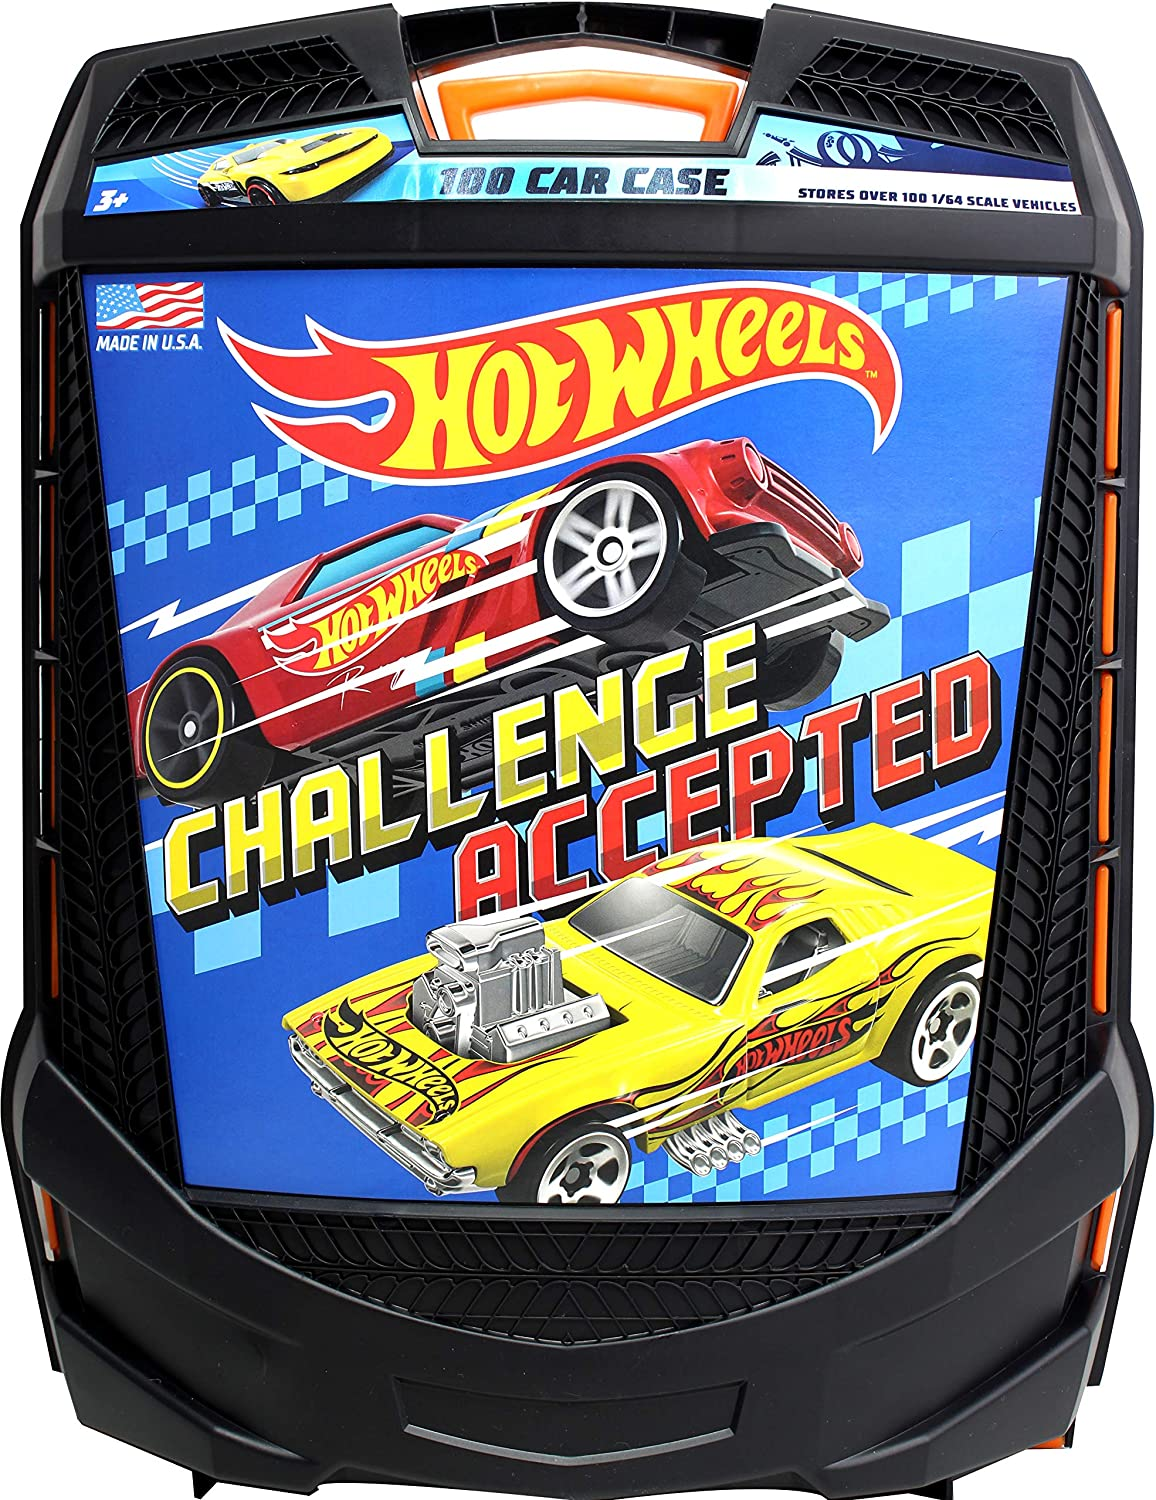 Hot Wheels 100 Car Case by Tara Toys: Amazon.es: Juguetes y juegos